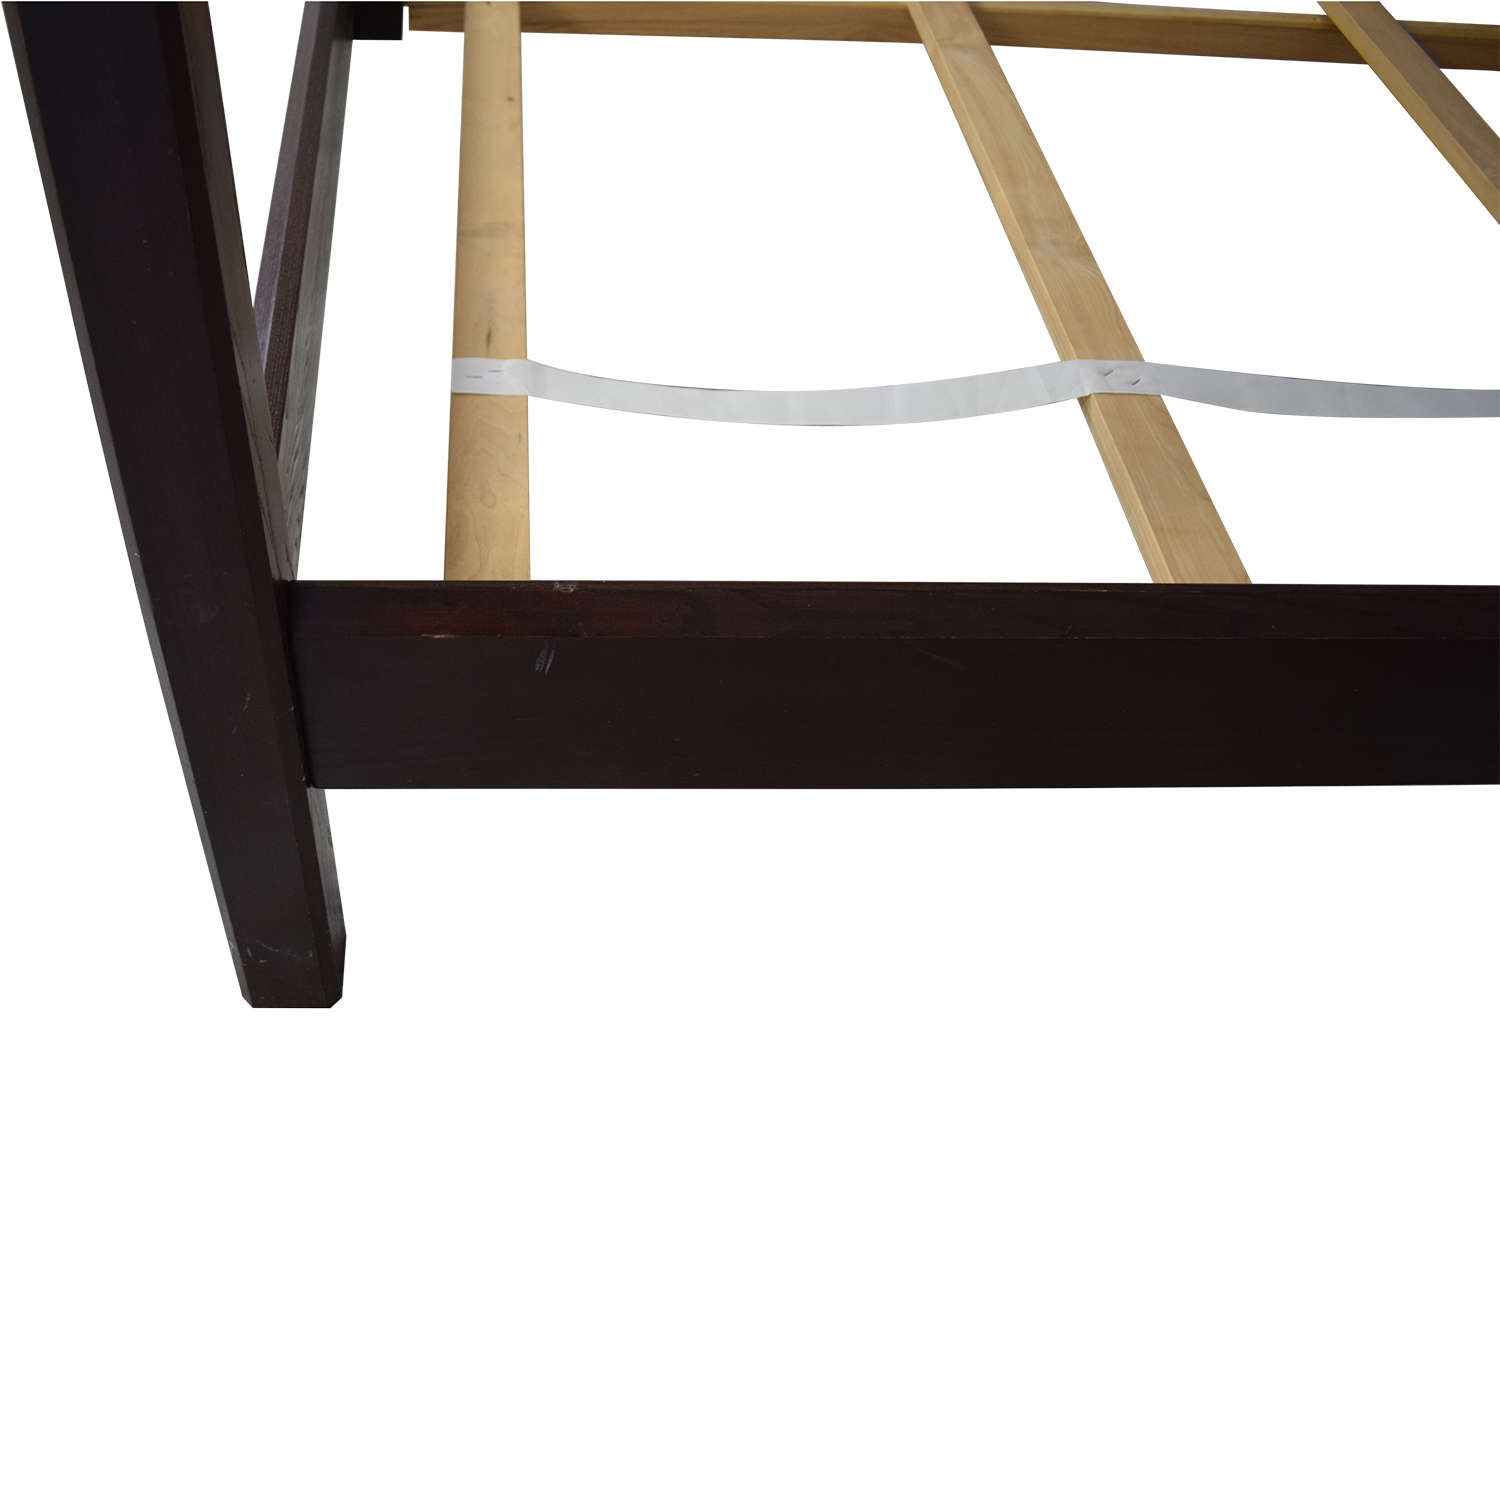 Bloomingdale's Bloomingdale's Canopy King Size Bed with Headboard Beds